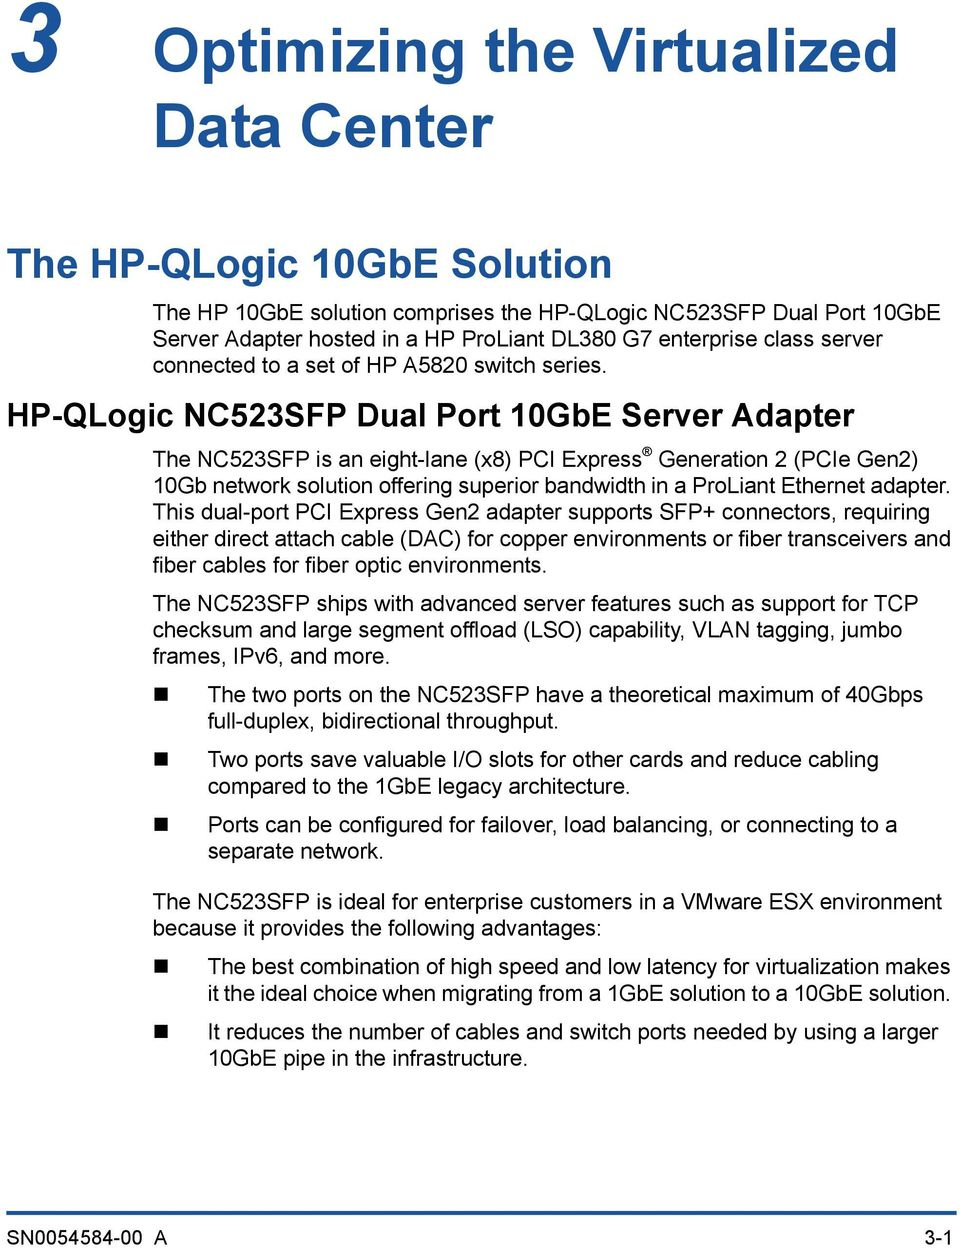 HP-QLogic NC523SFP Dual Port 10GbE Server Adapter The NC523SFP is an eight-lane (x8) PCI Express Generation 2 (PCIe Gen2) 10Gb network solution offering superior bandwidth in a ProLiant Ethernet